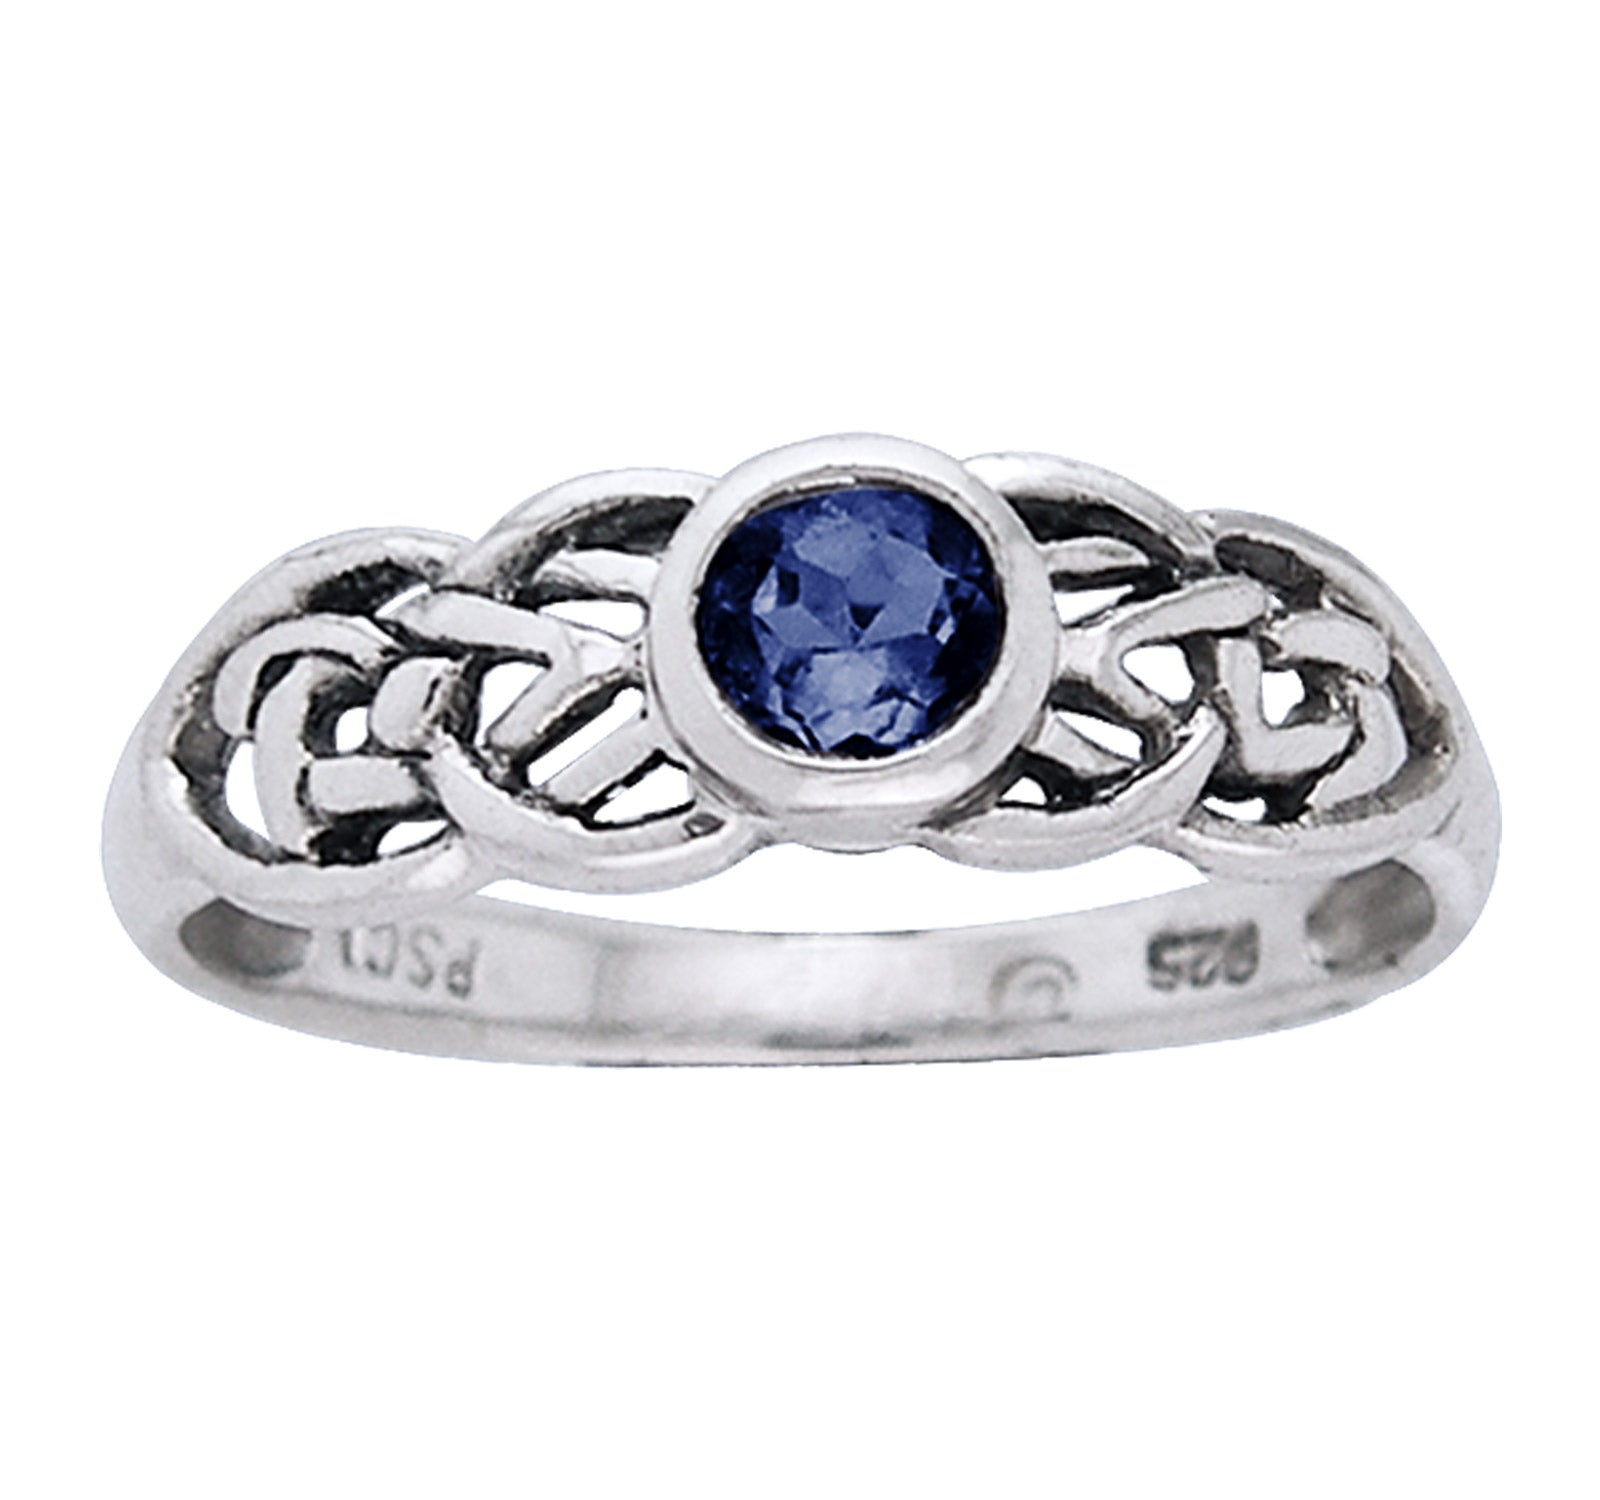 Petite Celtic Knot Birthstone Ring Sterling Silver Synthetic Sapphire For September - Silver Insanity